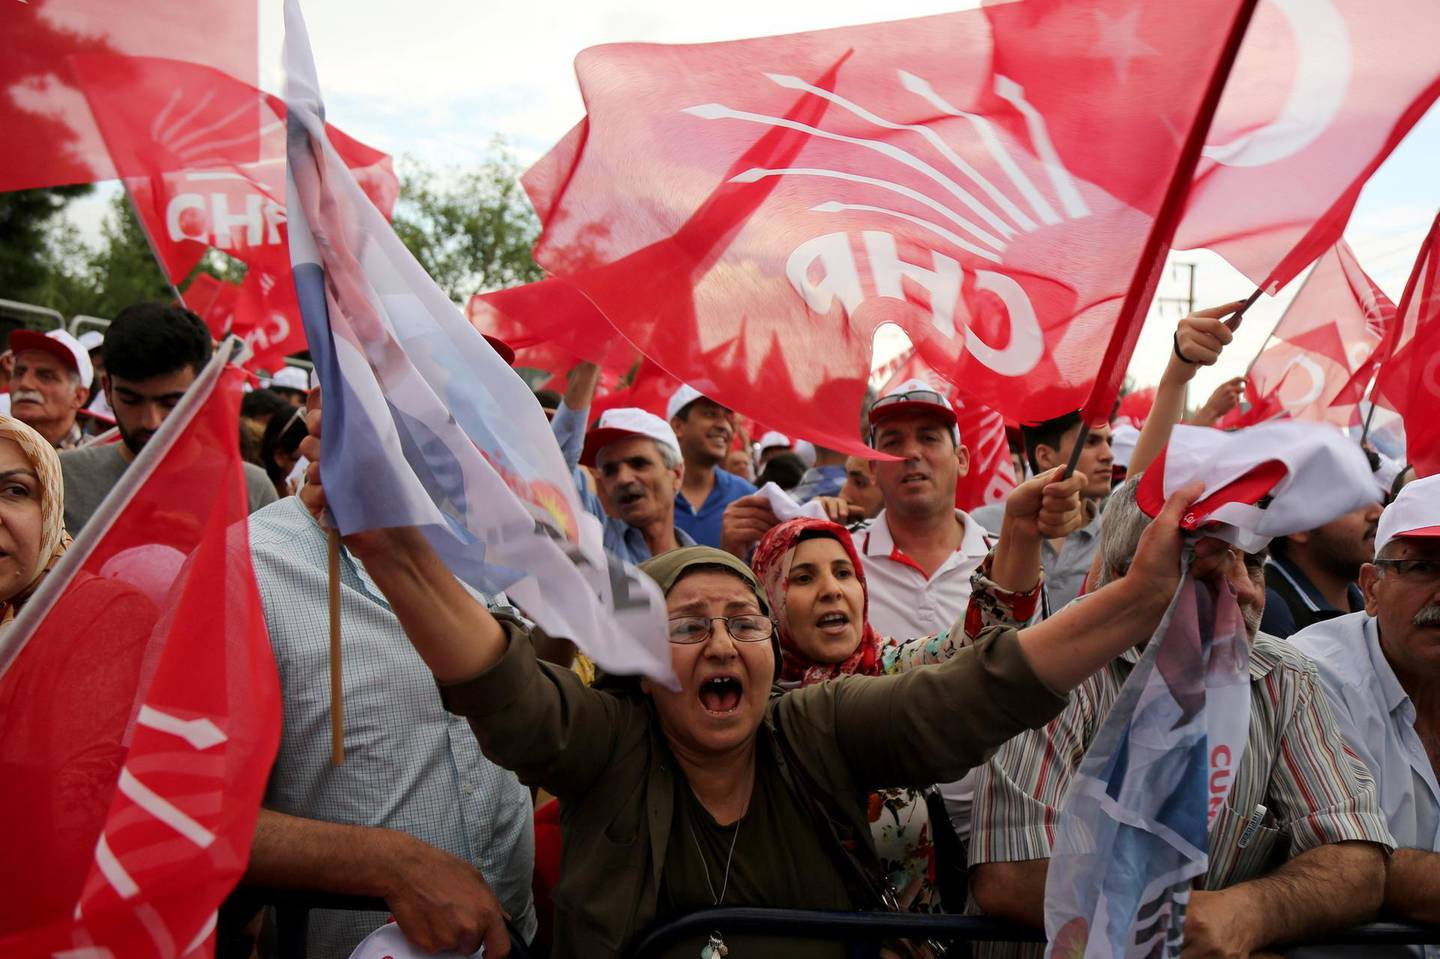 Supporters of Muharrem Ince, presidential candidate of the main opposition Republican People's Party (CHP), wave Turkish and party flags during an election rally in Diyarbakir, Turkey June 11, 2018. REUTERS/Sertac Kayar